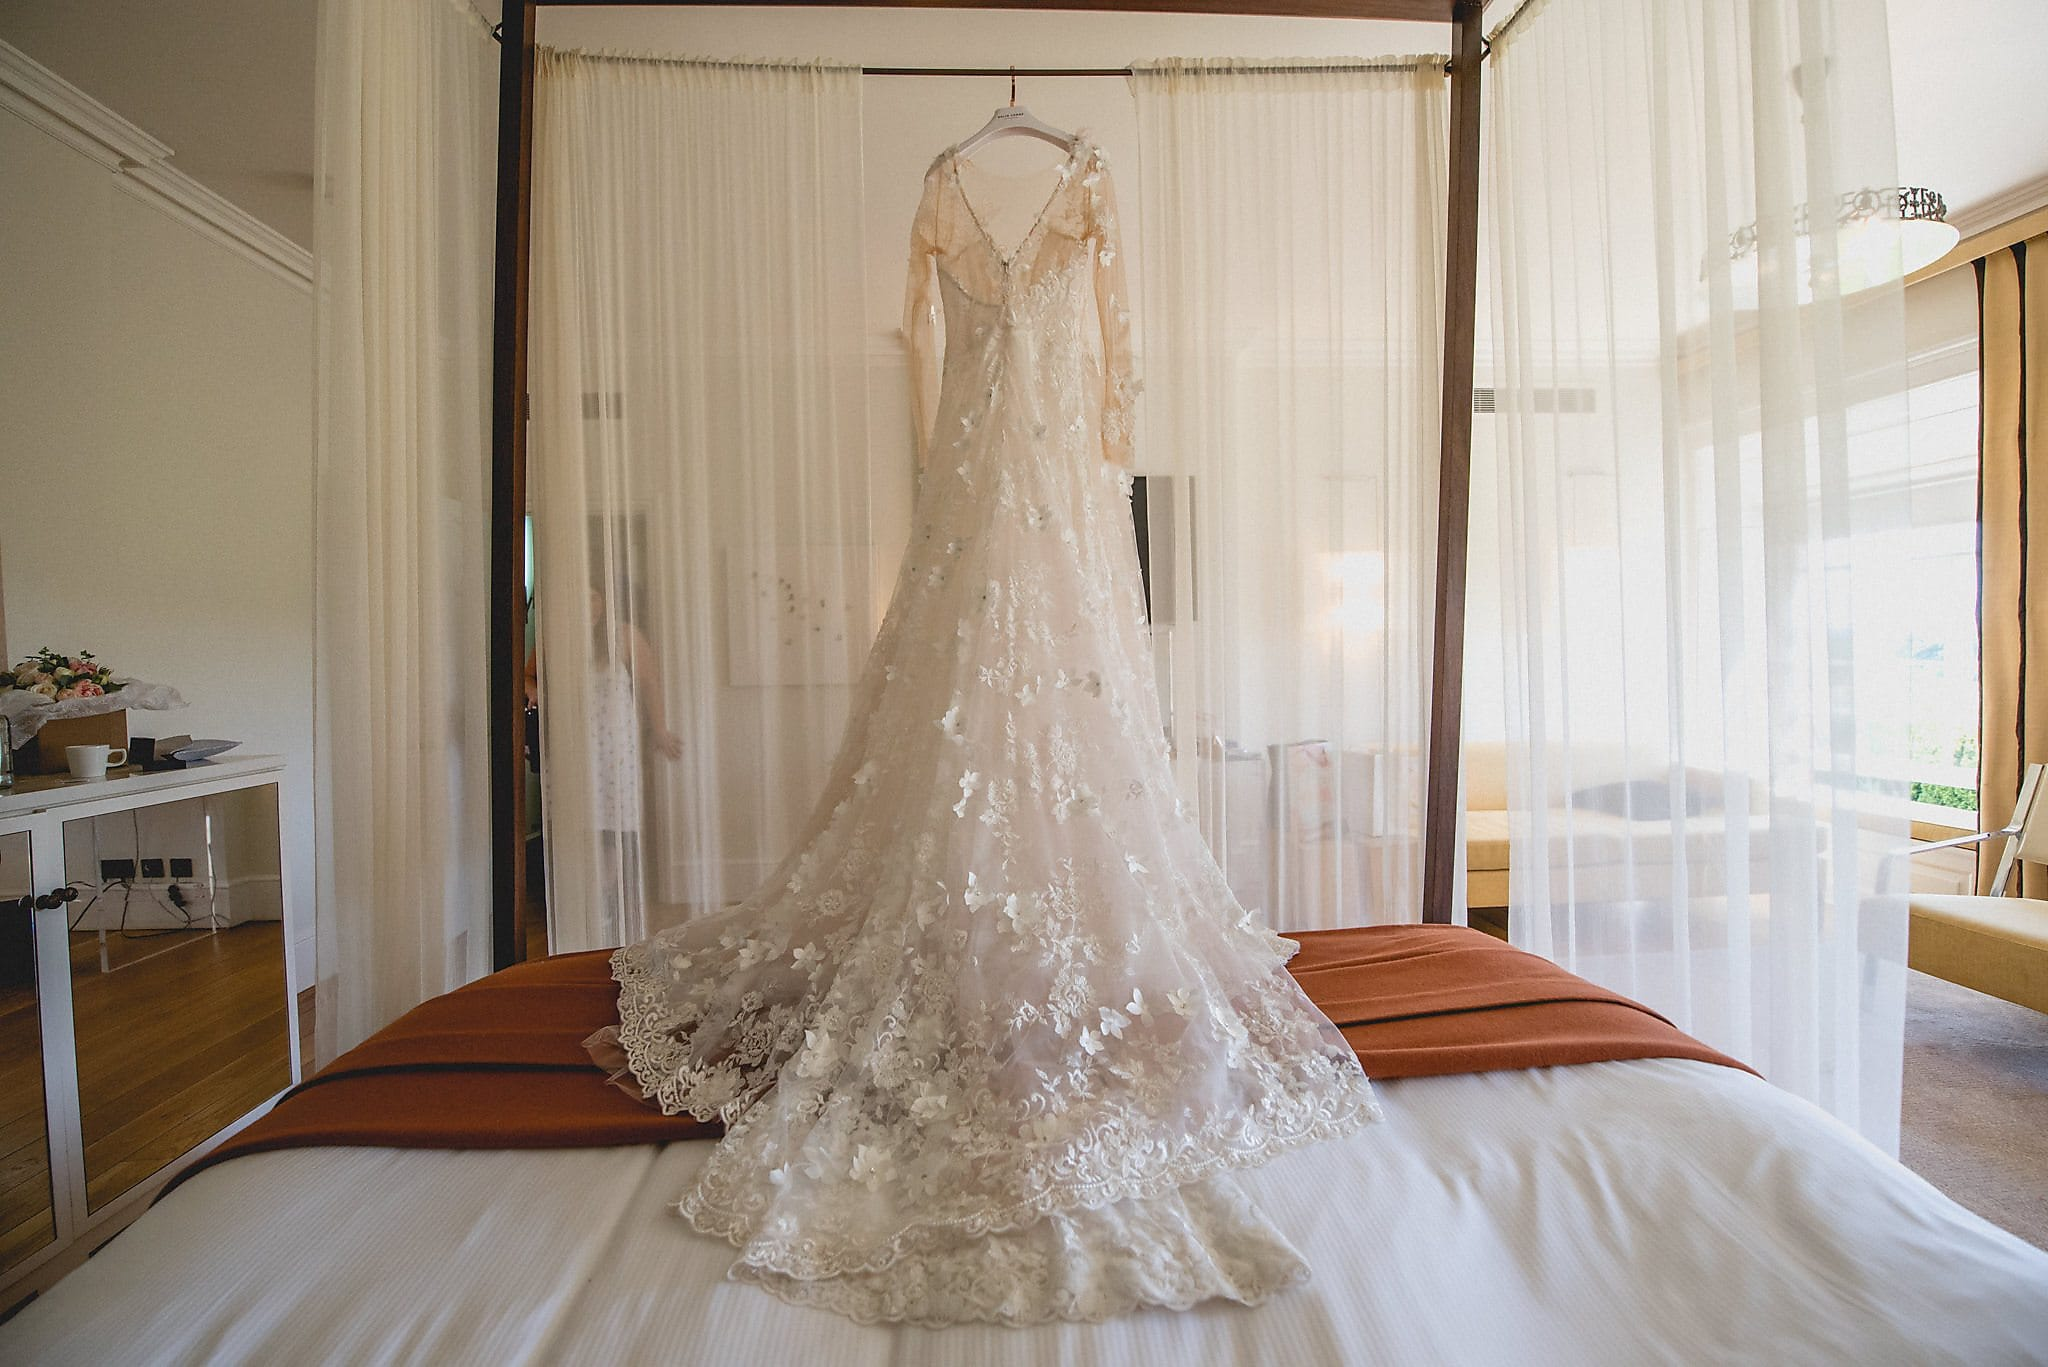 Bride's dress hangs above the bed at The Grove hotel